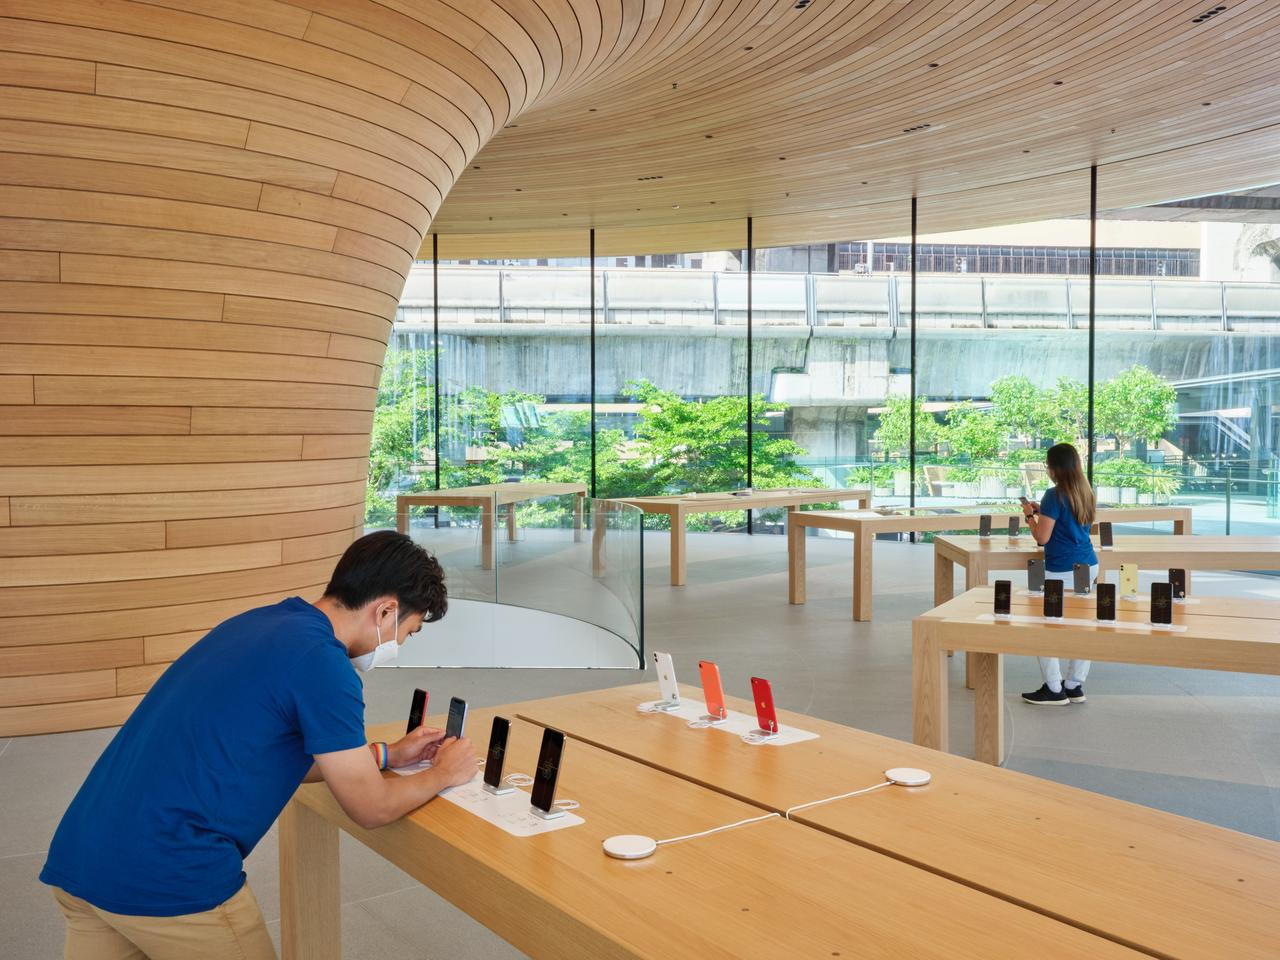 Apple Central World's interior decor is made up of concrete, glass, wood, and polished stainless steel